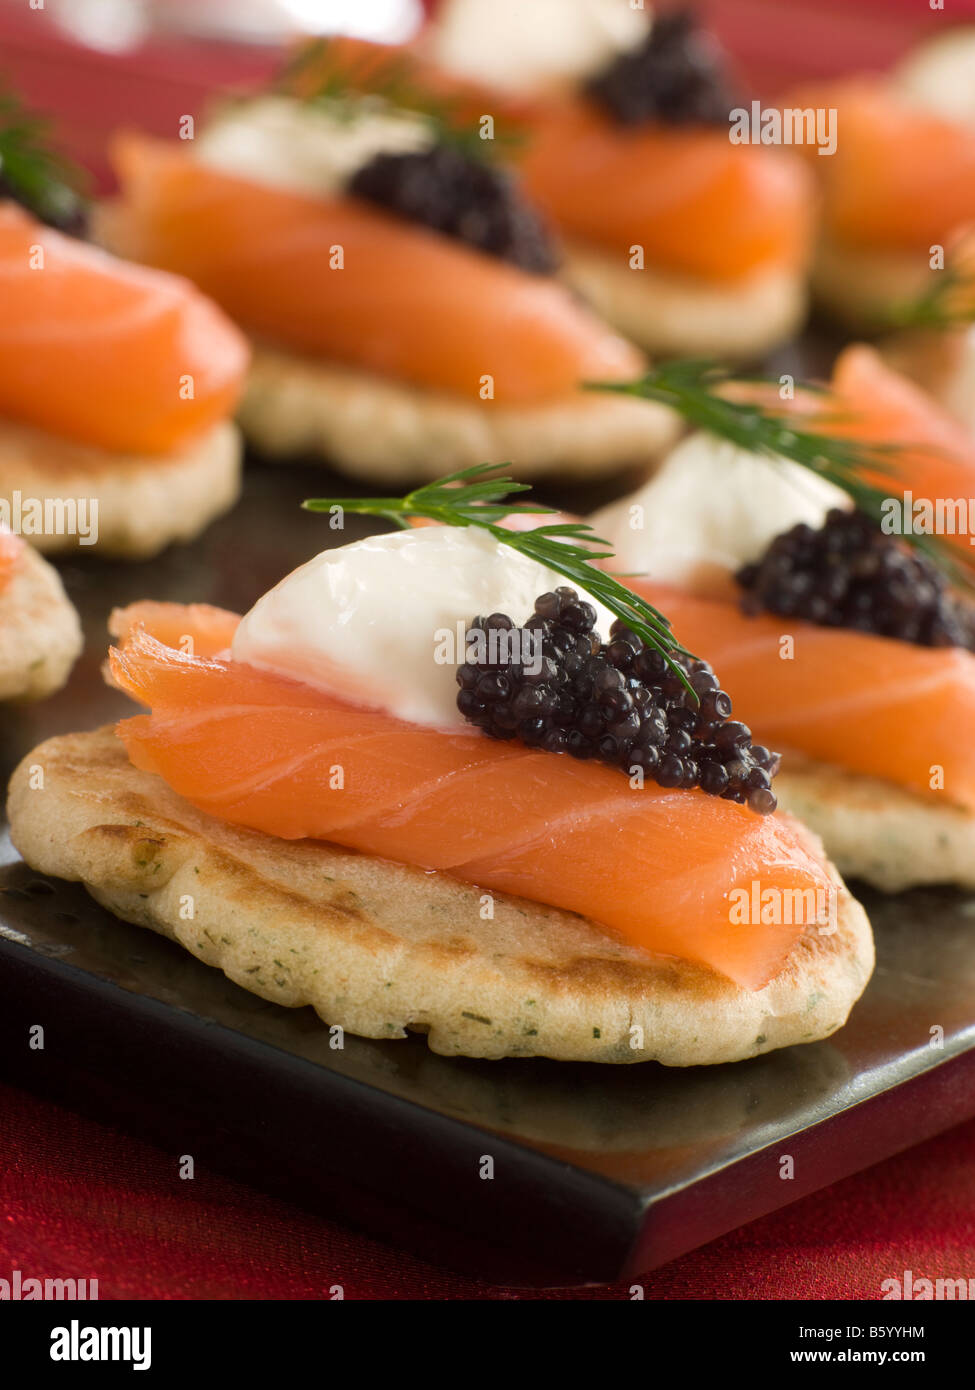 Smoked Salmon Blinis Canap s with Sour Cream and Caviar - Stock Image